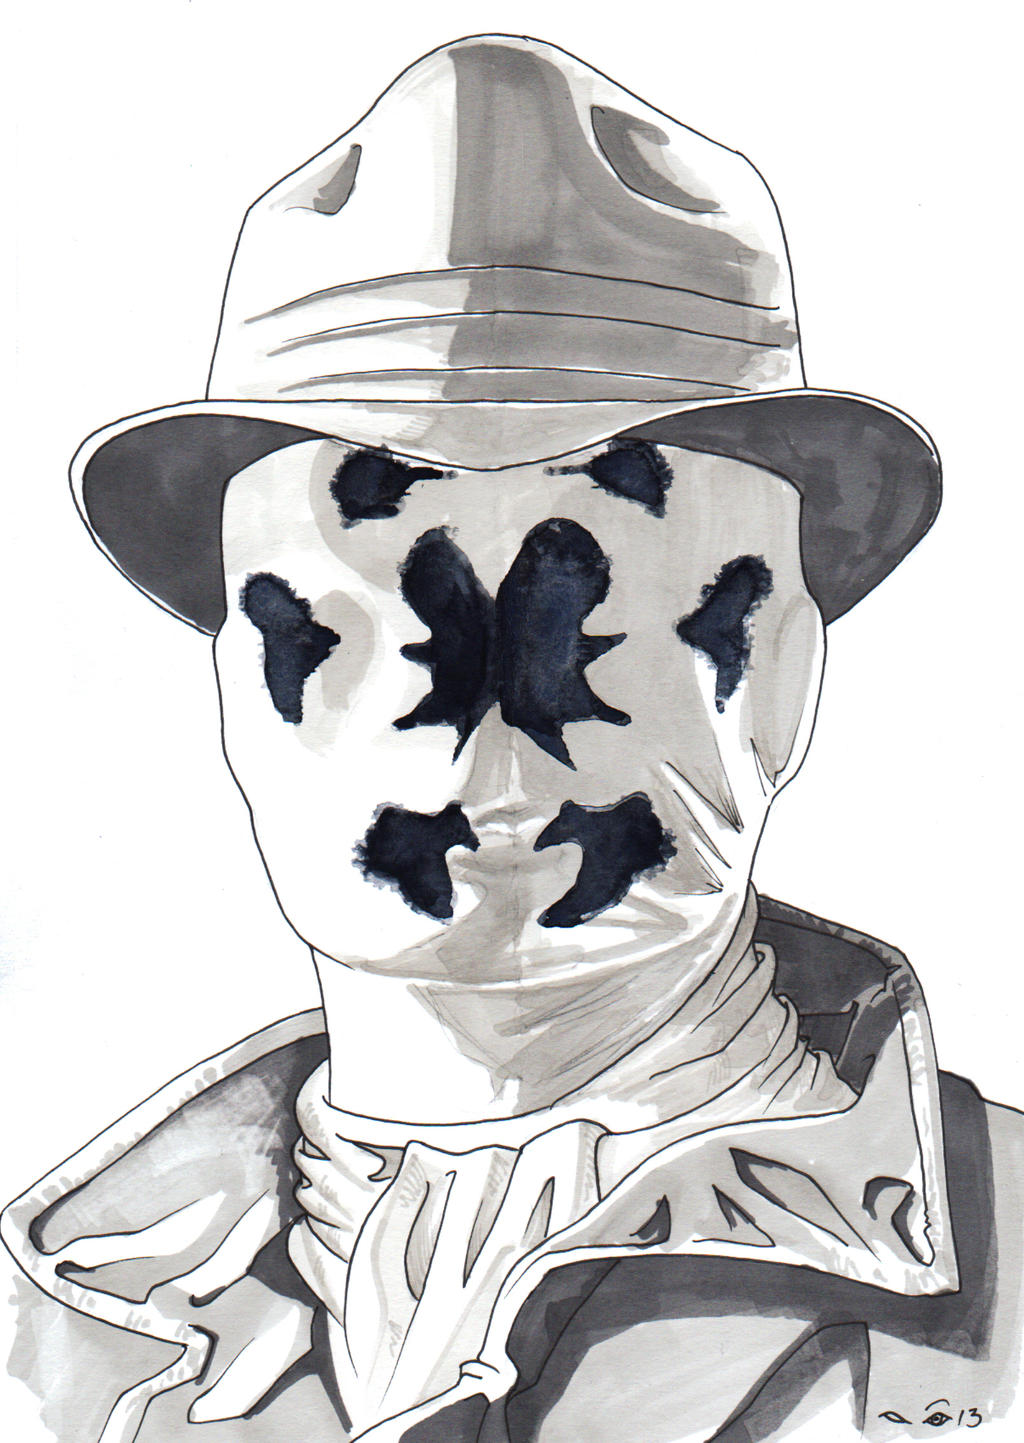 rorschach latin singles Reddit gives you the best of the internet in one place get a constantly updating feed of breaking news, fun stories, pics, memes, and videos just for you passionate about something niche reddit has thousands of vibrant communities with people that share your interests alternatively, find out what's trending across all of reddit on r/popular.